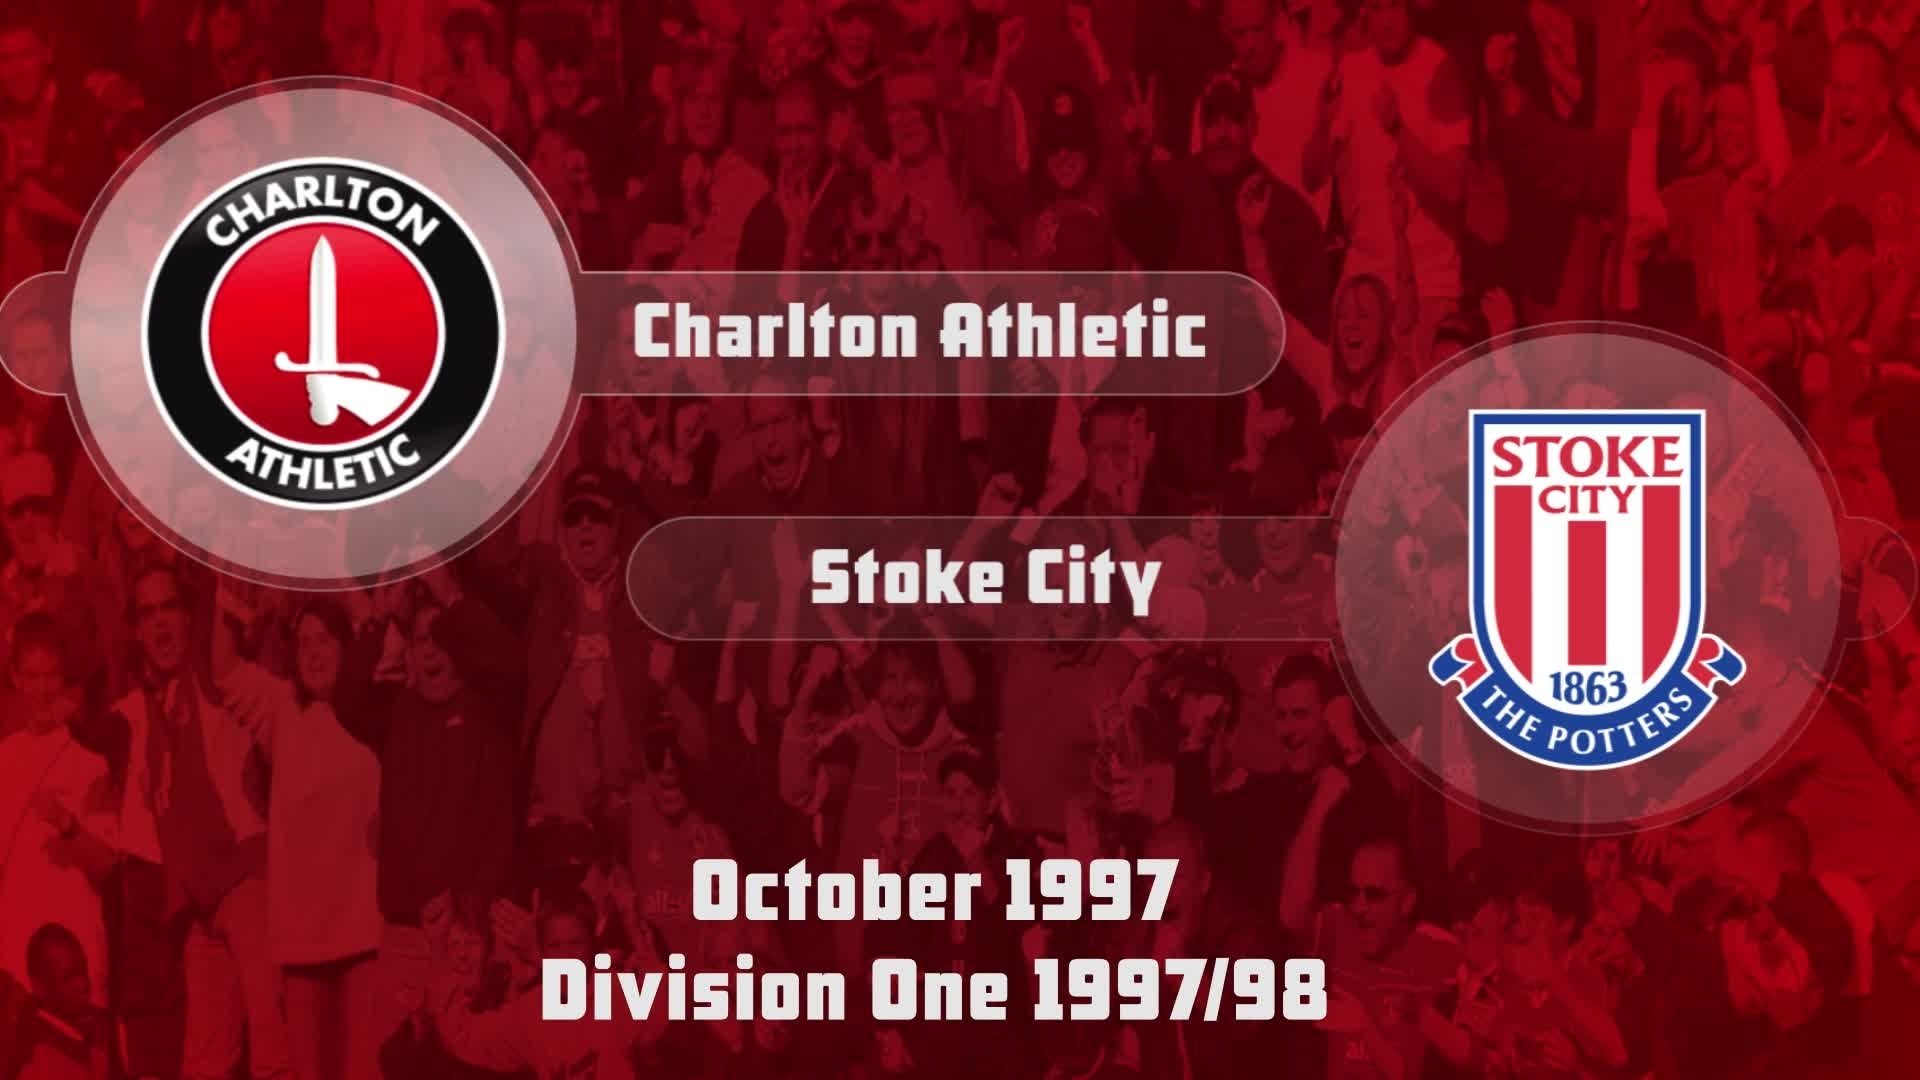 13 HIGHLIGHTS | Charlton 1 Stoke 1 (Oct 1997)